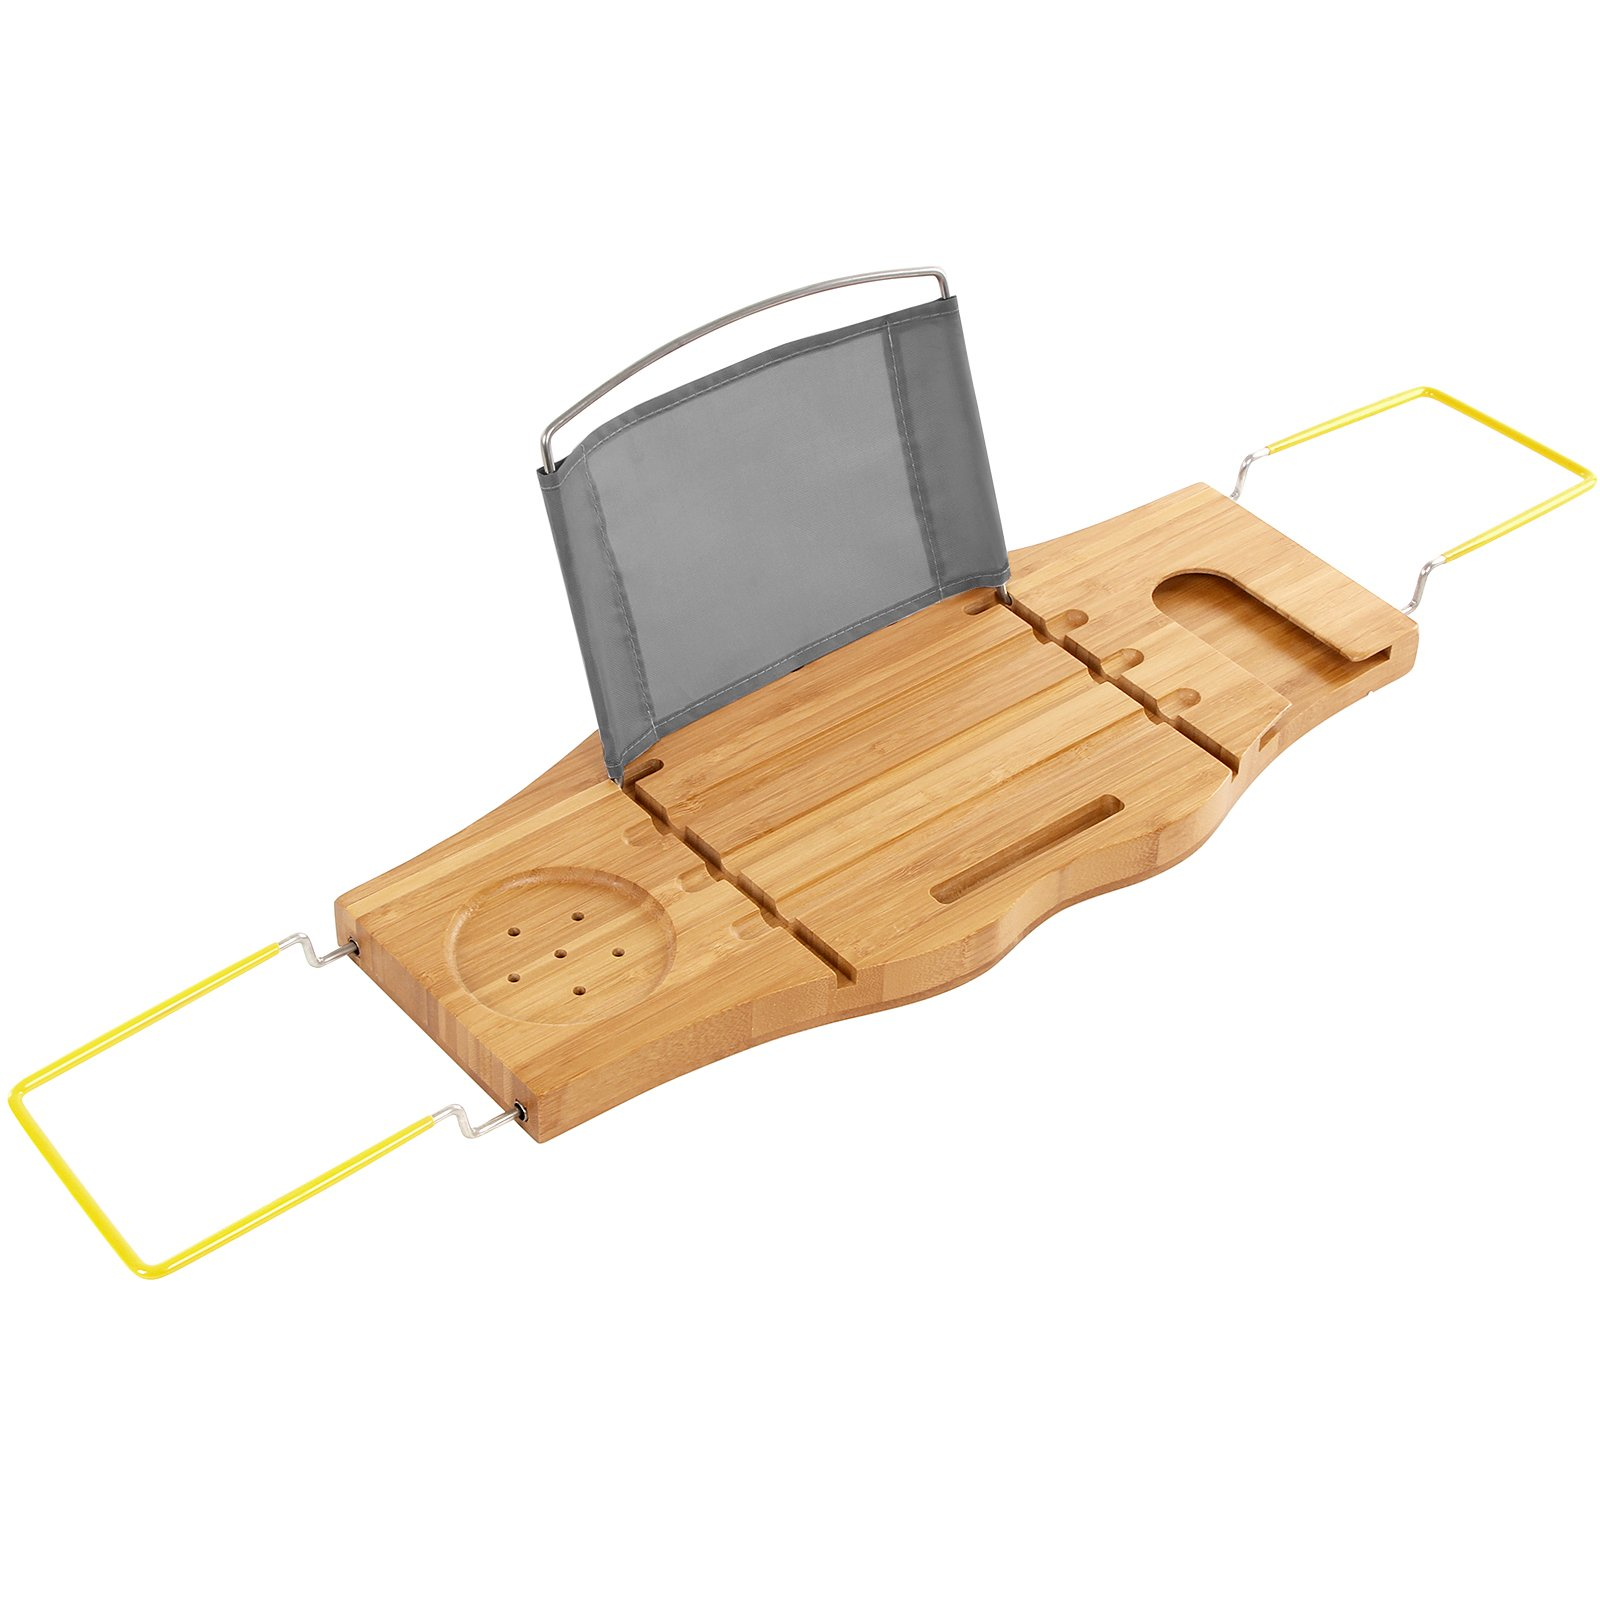 SONGMICS Extendable Bamboo Bathtub Caddy Tray Adjustable Side Rubber Grips  Stainless Steel Rack Bathroom Organizer with